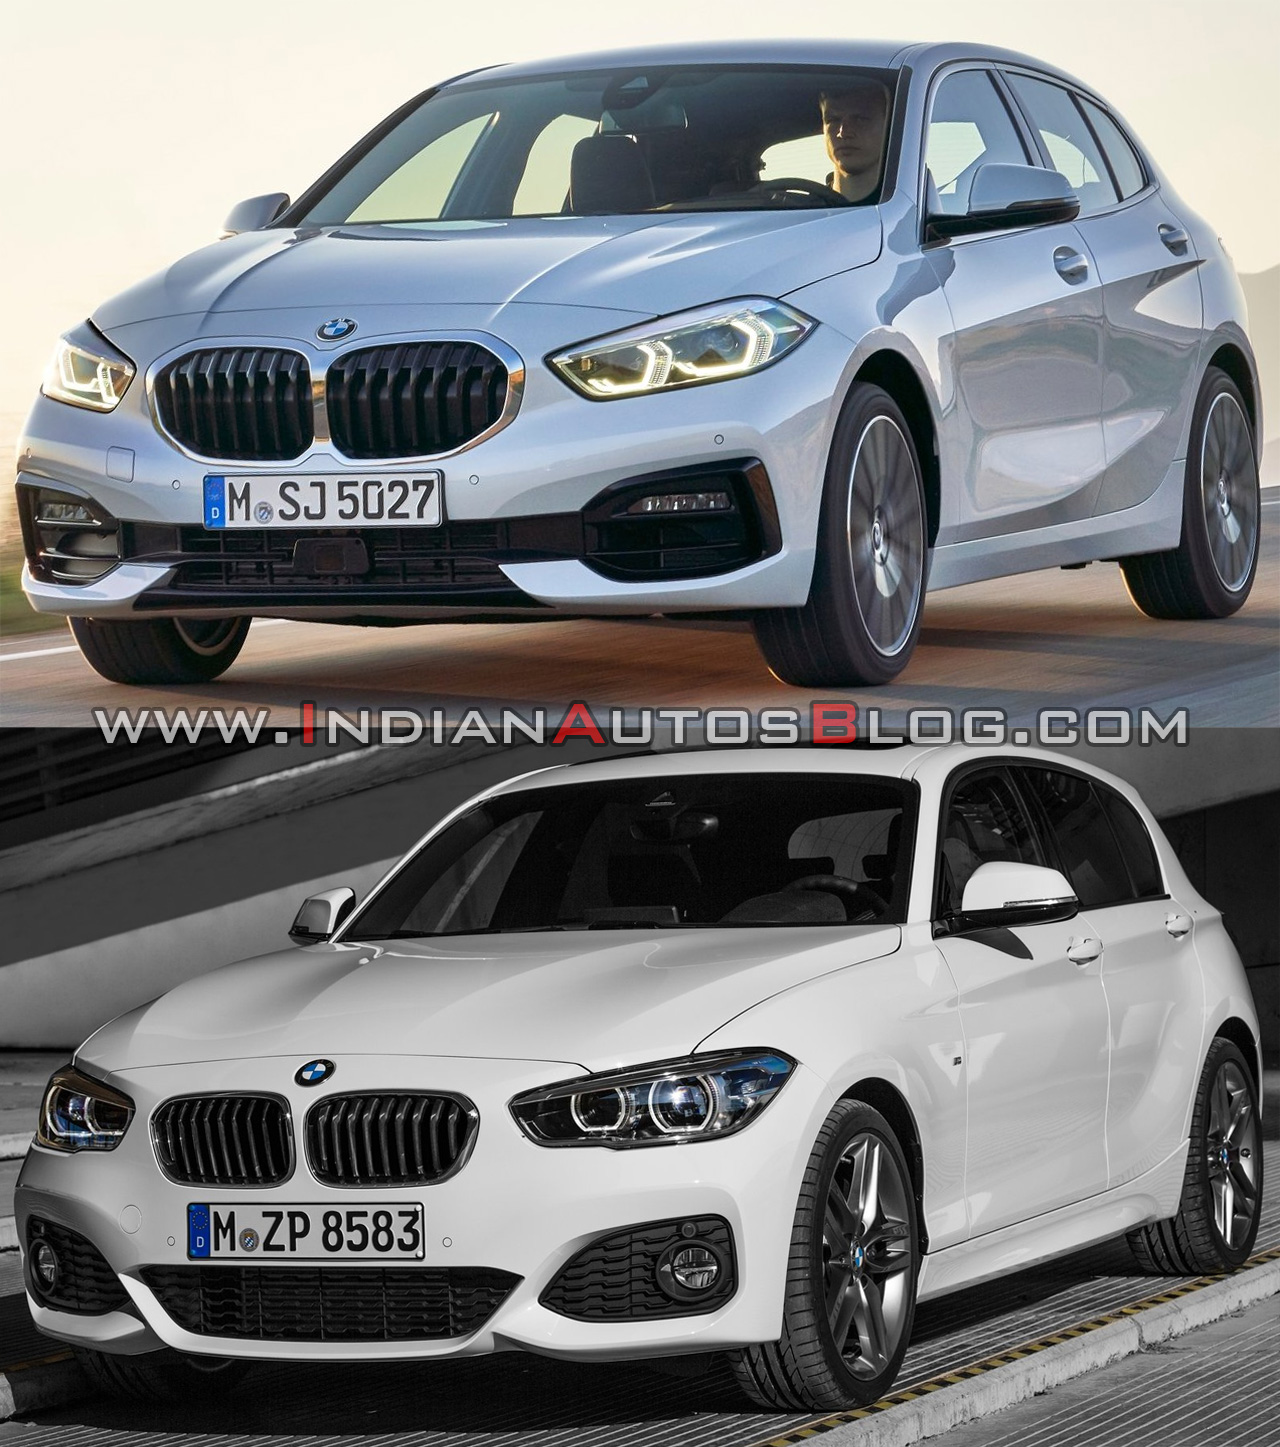 2019 Bmw 1 Series Vs 2015 Bmw 1 Series Old Vs New